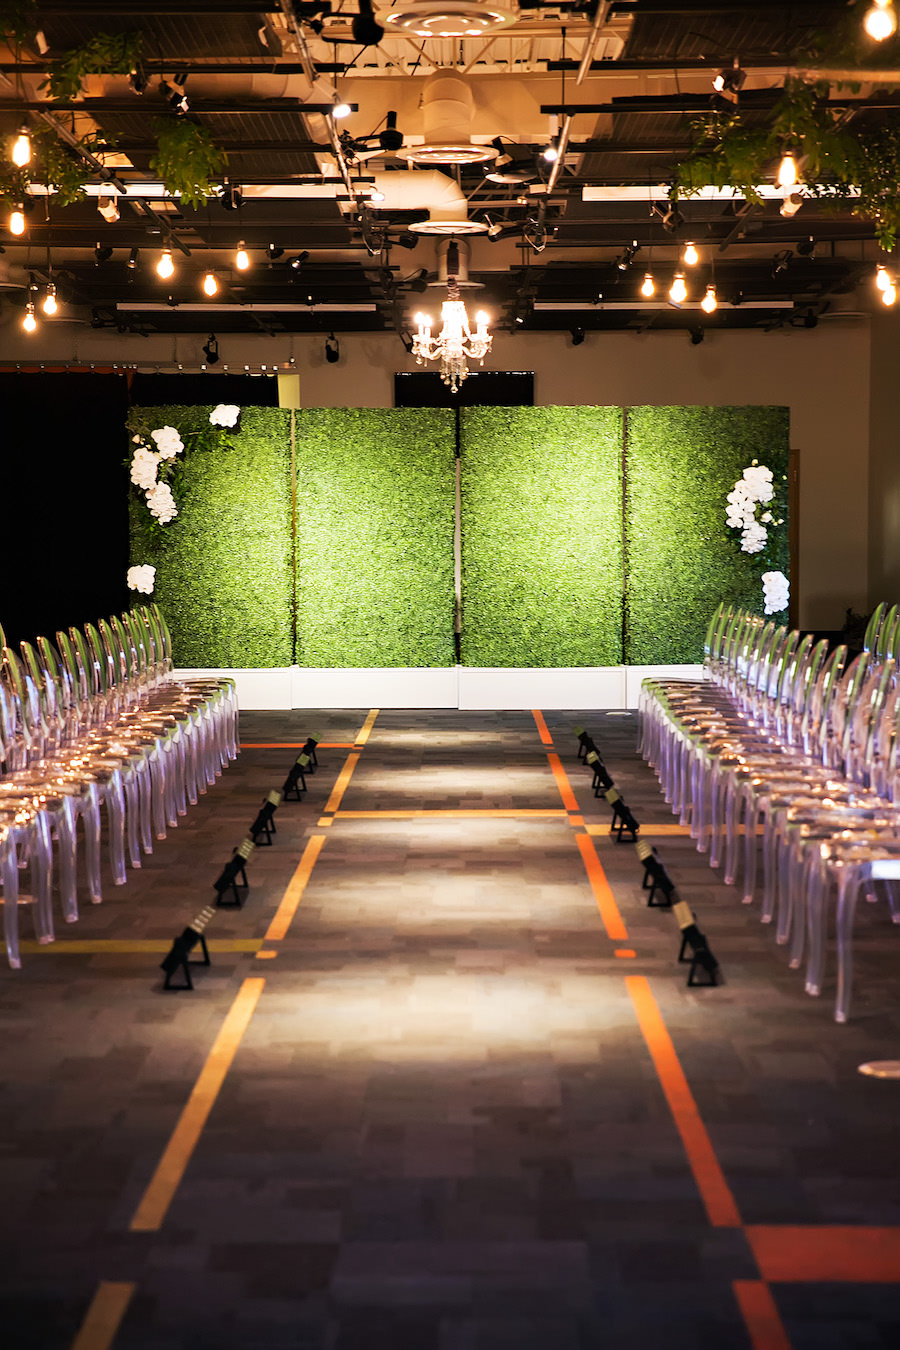 Modern Green Wedding Reception Inspiration & Ideas| Greenery Wall with Ghost Chairs and Hanging Chandeliers | Rentals A Chair Affair | Lighting Nature Coast Entertainment Services | Downtown Tampa Wedding Venue Glazer's Children Museum | Wedding Planner Glitz Events